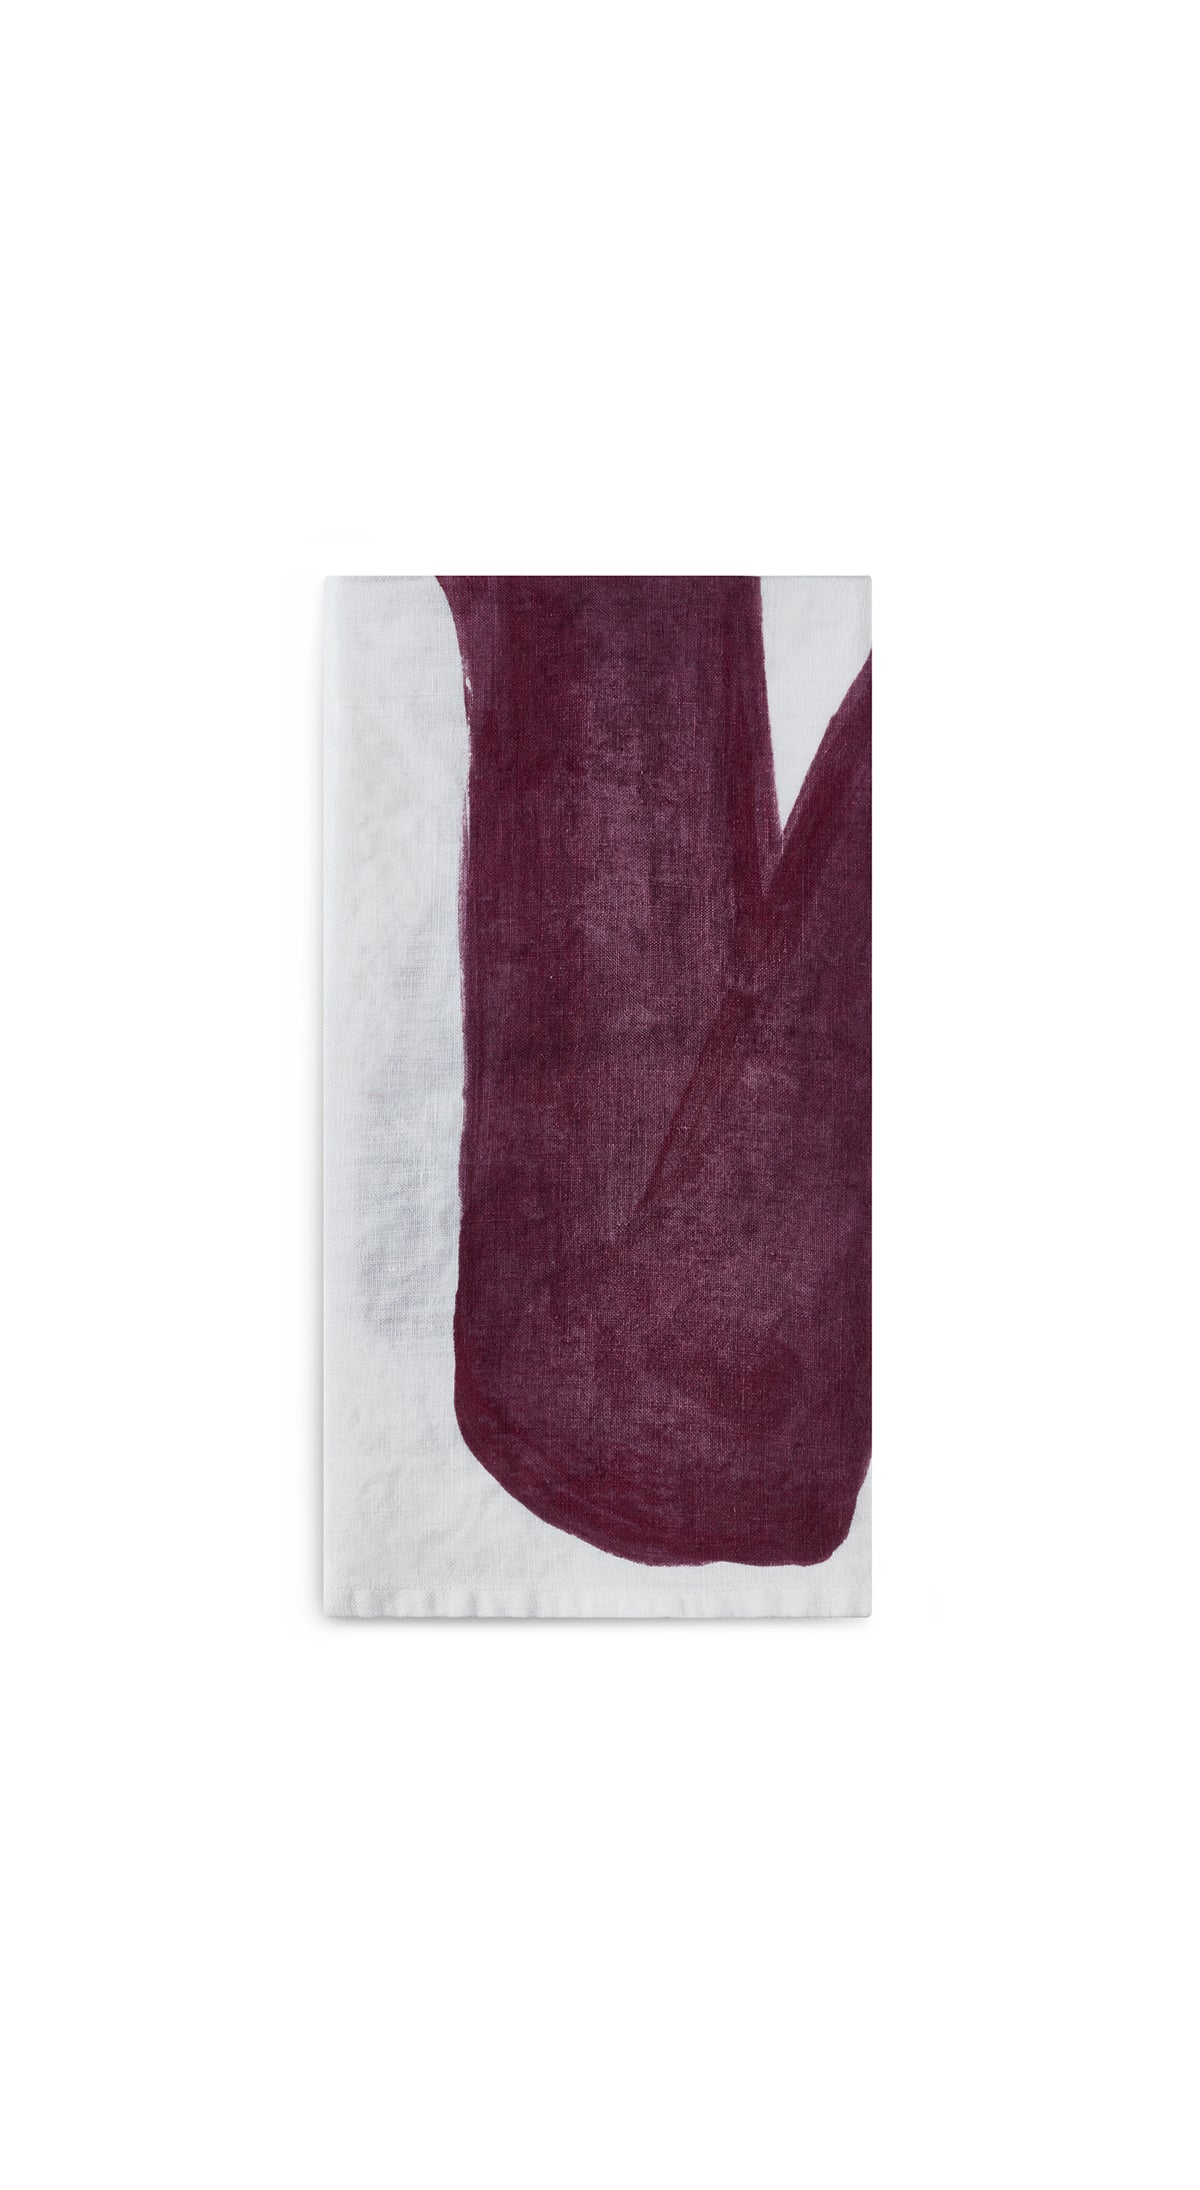 Alphabet Napkin 'V' in Grape Purple